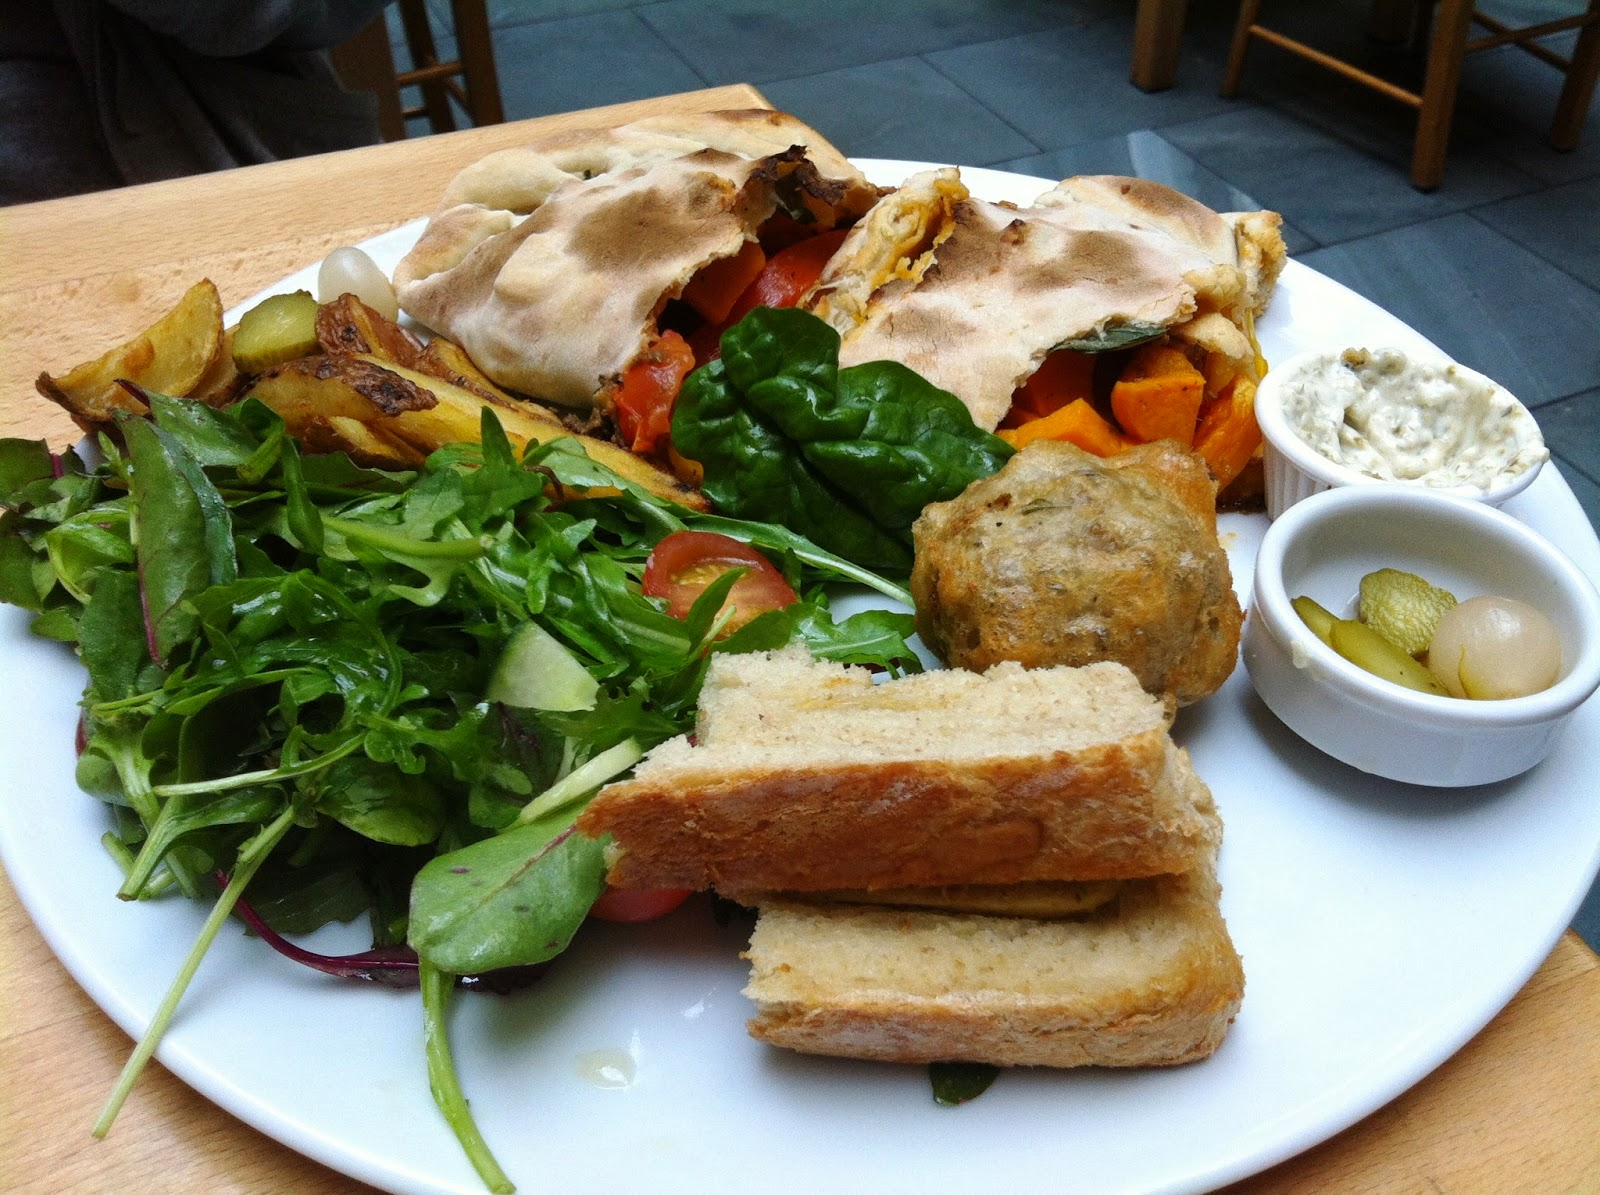 Vegan Food at Saramago Cafe Bar Glasgow, Scotland